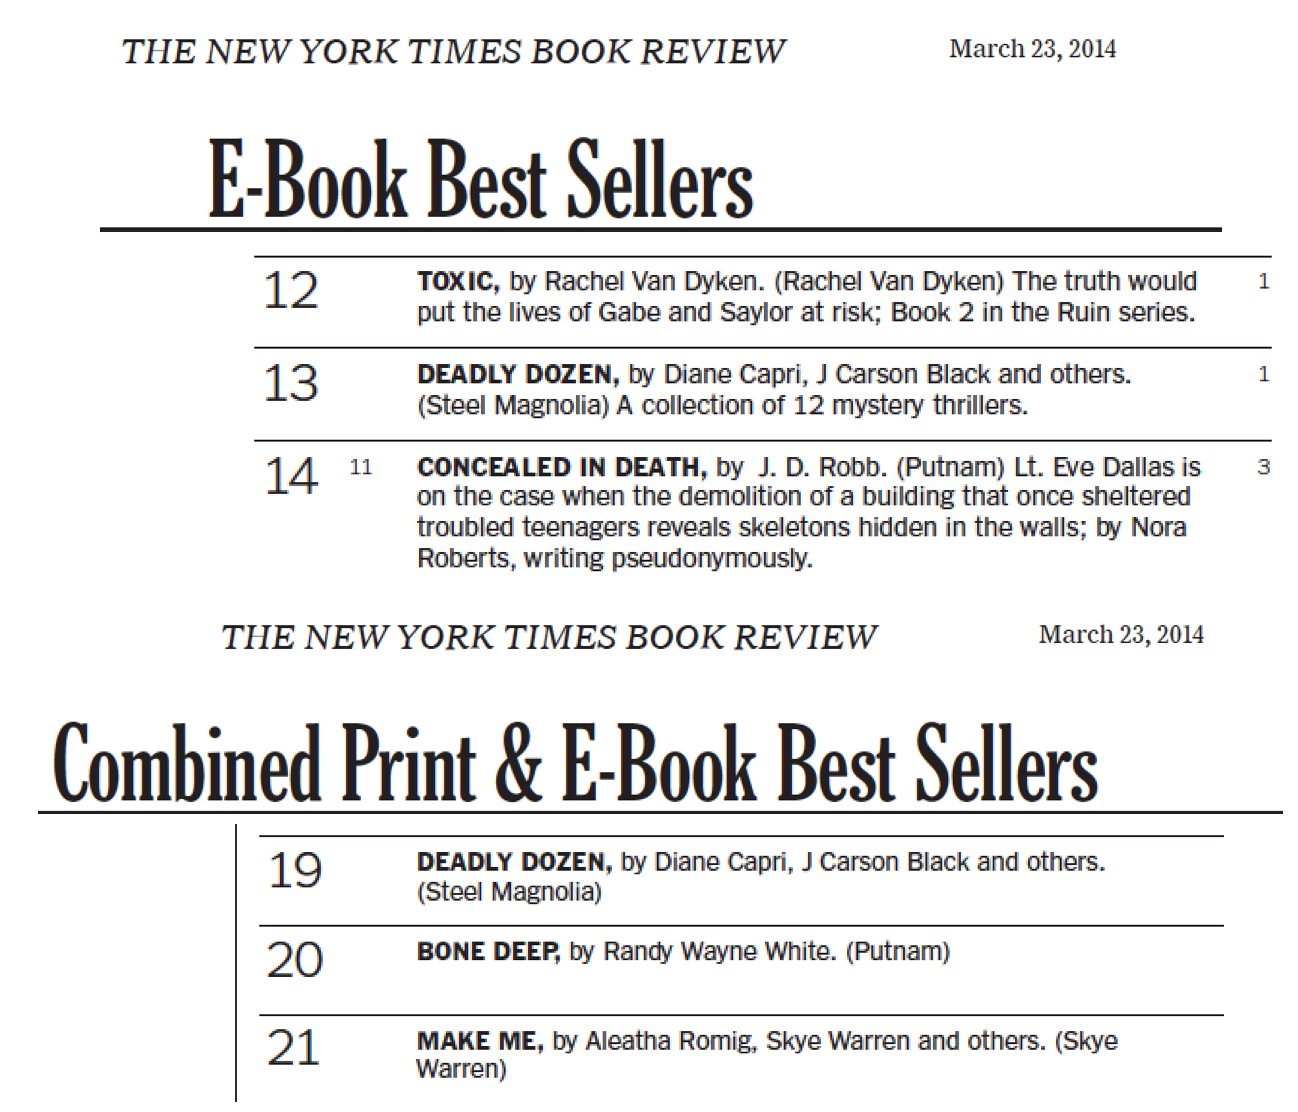 http://thetwelvexii.com/2014/03/deadly-dozen-hits-new-york-times-bestseller-list/